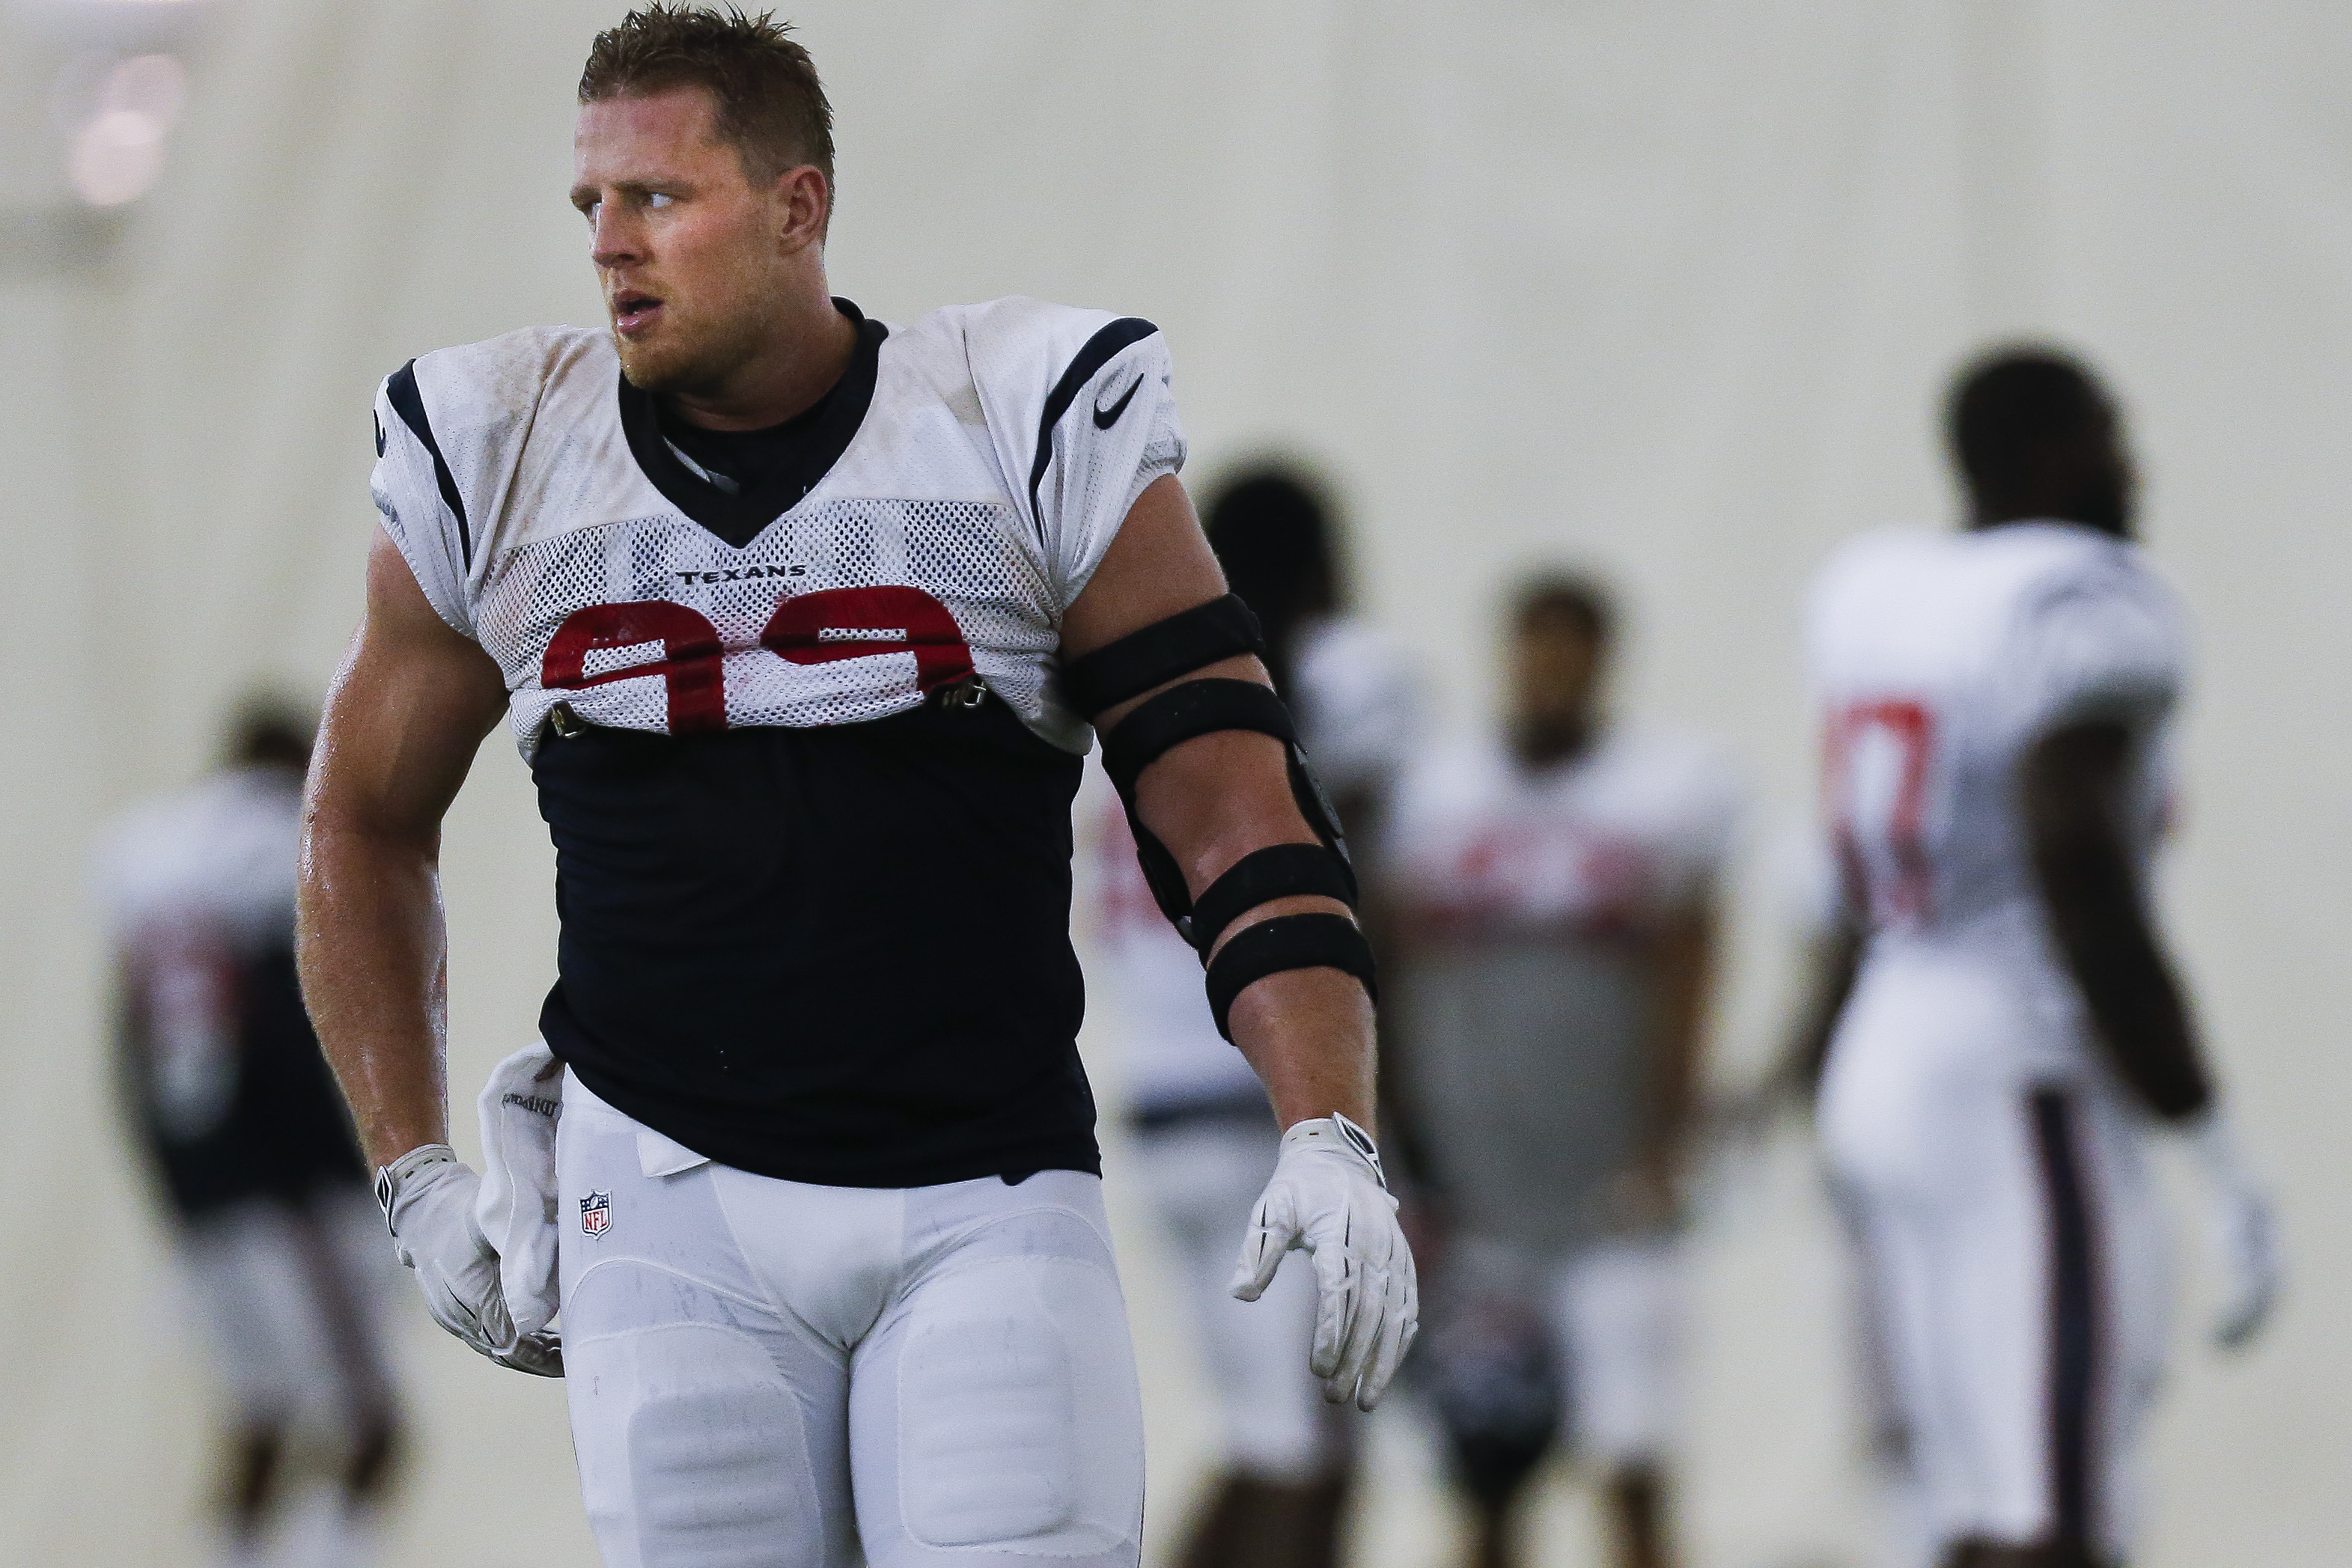 Houston Texans defensive end J.J. Watt practices with the team in Houston, Monday, Sept. 5, 2016. Watt is back at practice after back surgery and preparing for Houston's opener against Chicago.  (Michael Ciaglo/Houston Chronicle via AP)